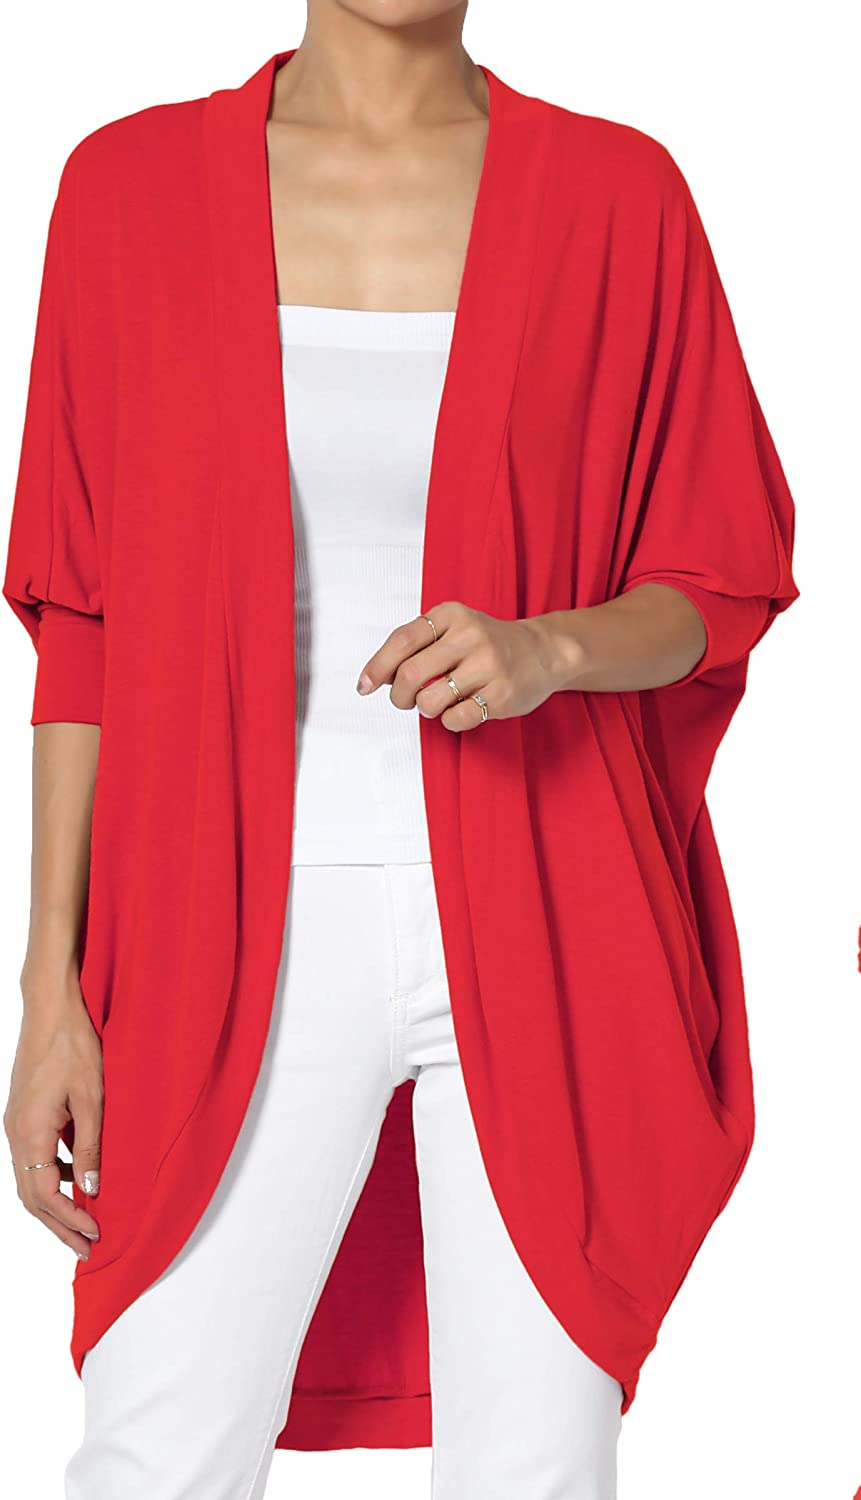 TheMogan S~3X Cocoon Draped Jersey Knit 3/4 Sleeve Oversized Open Front Cardigan